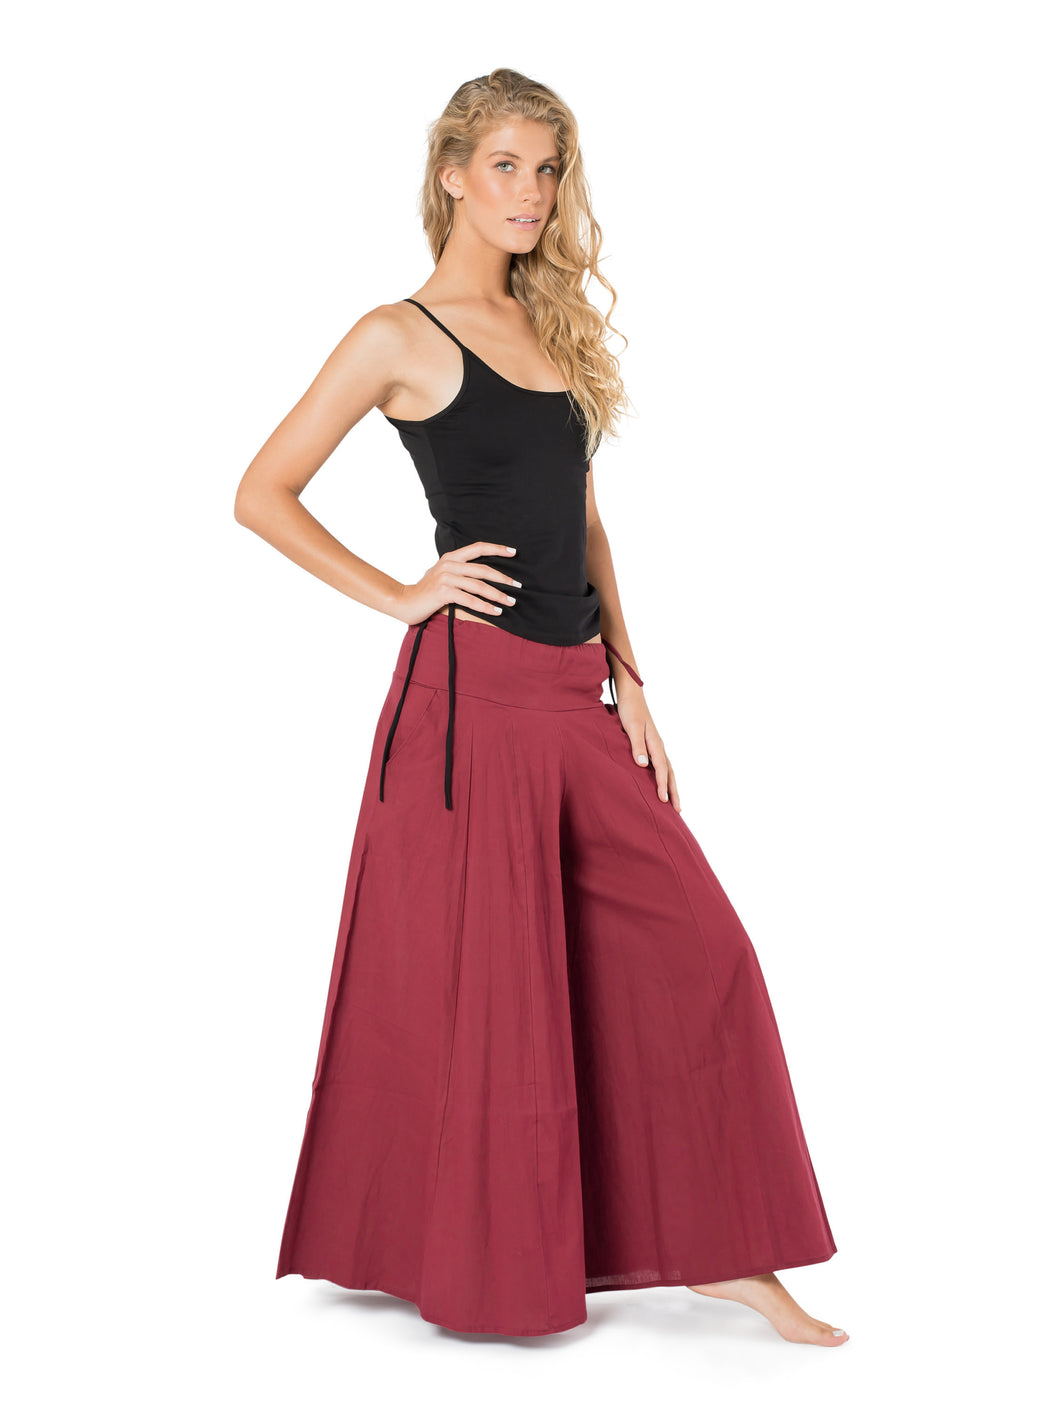 Skirt Pants, Wide Leg Pants, Maxi Pants, Red Pants, Yoga Pants for Women, Boho Pants, Loose Fit, Wide Trousers, Pants with Pockets.